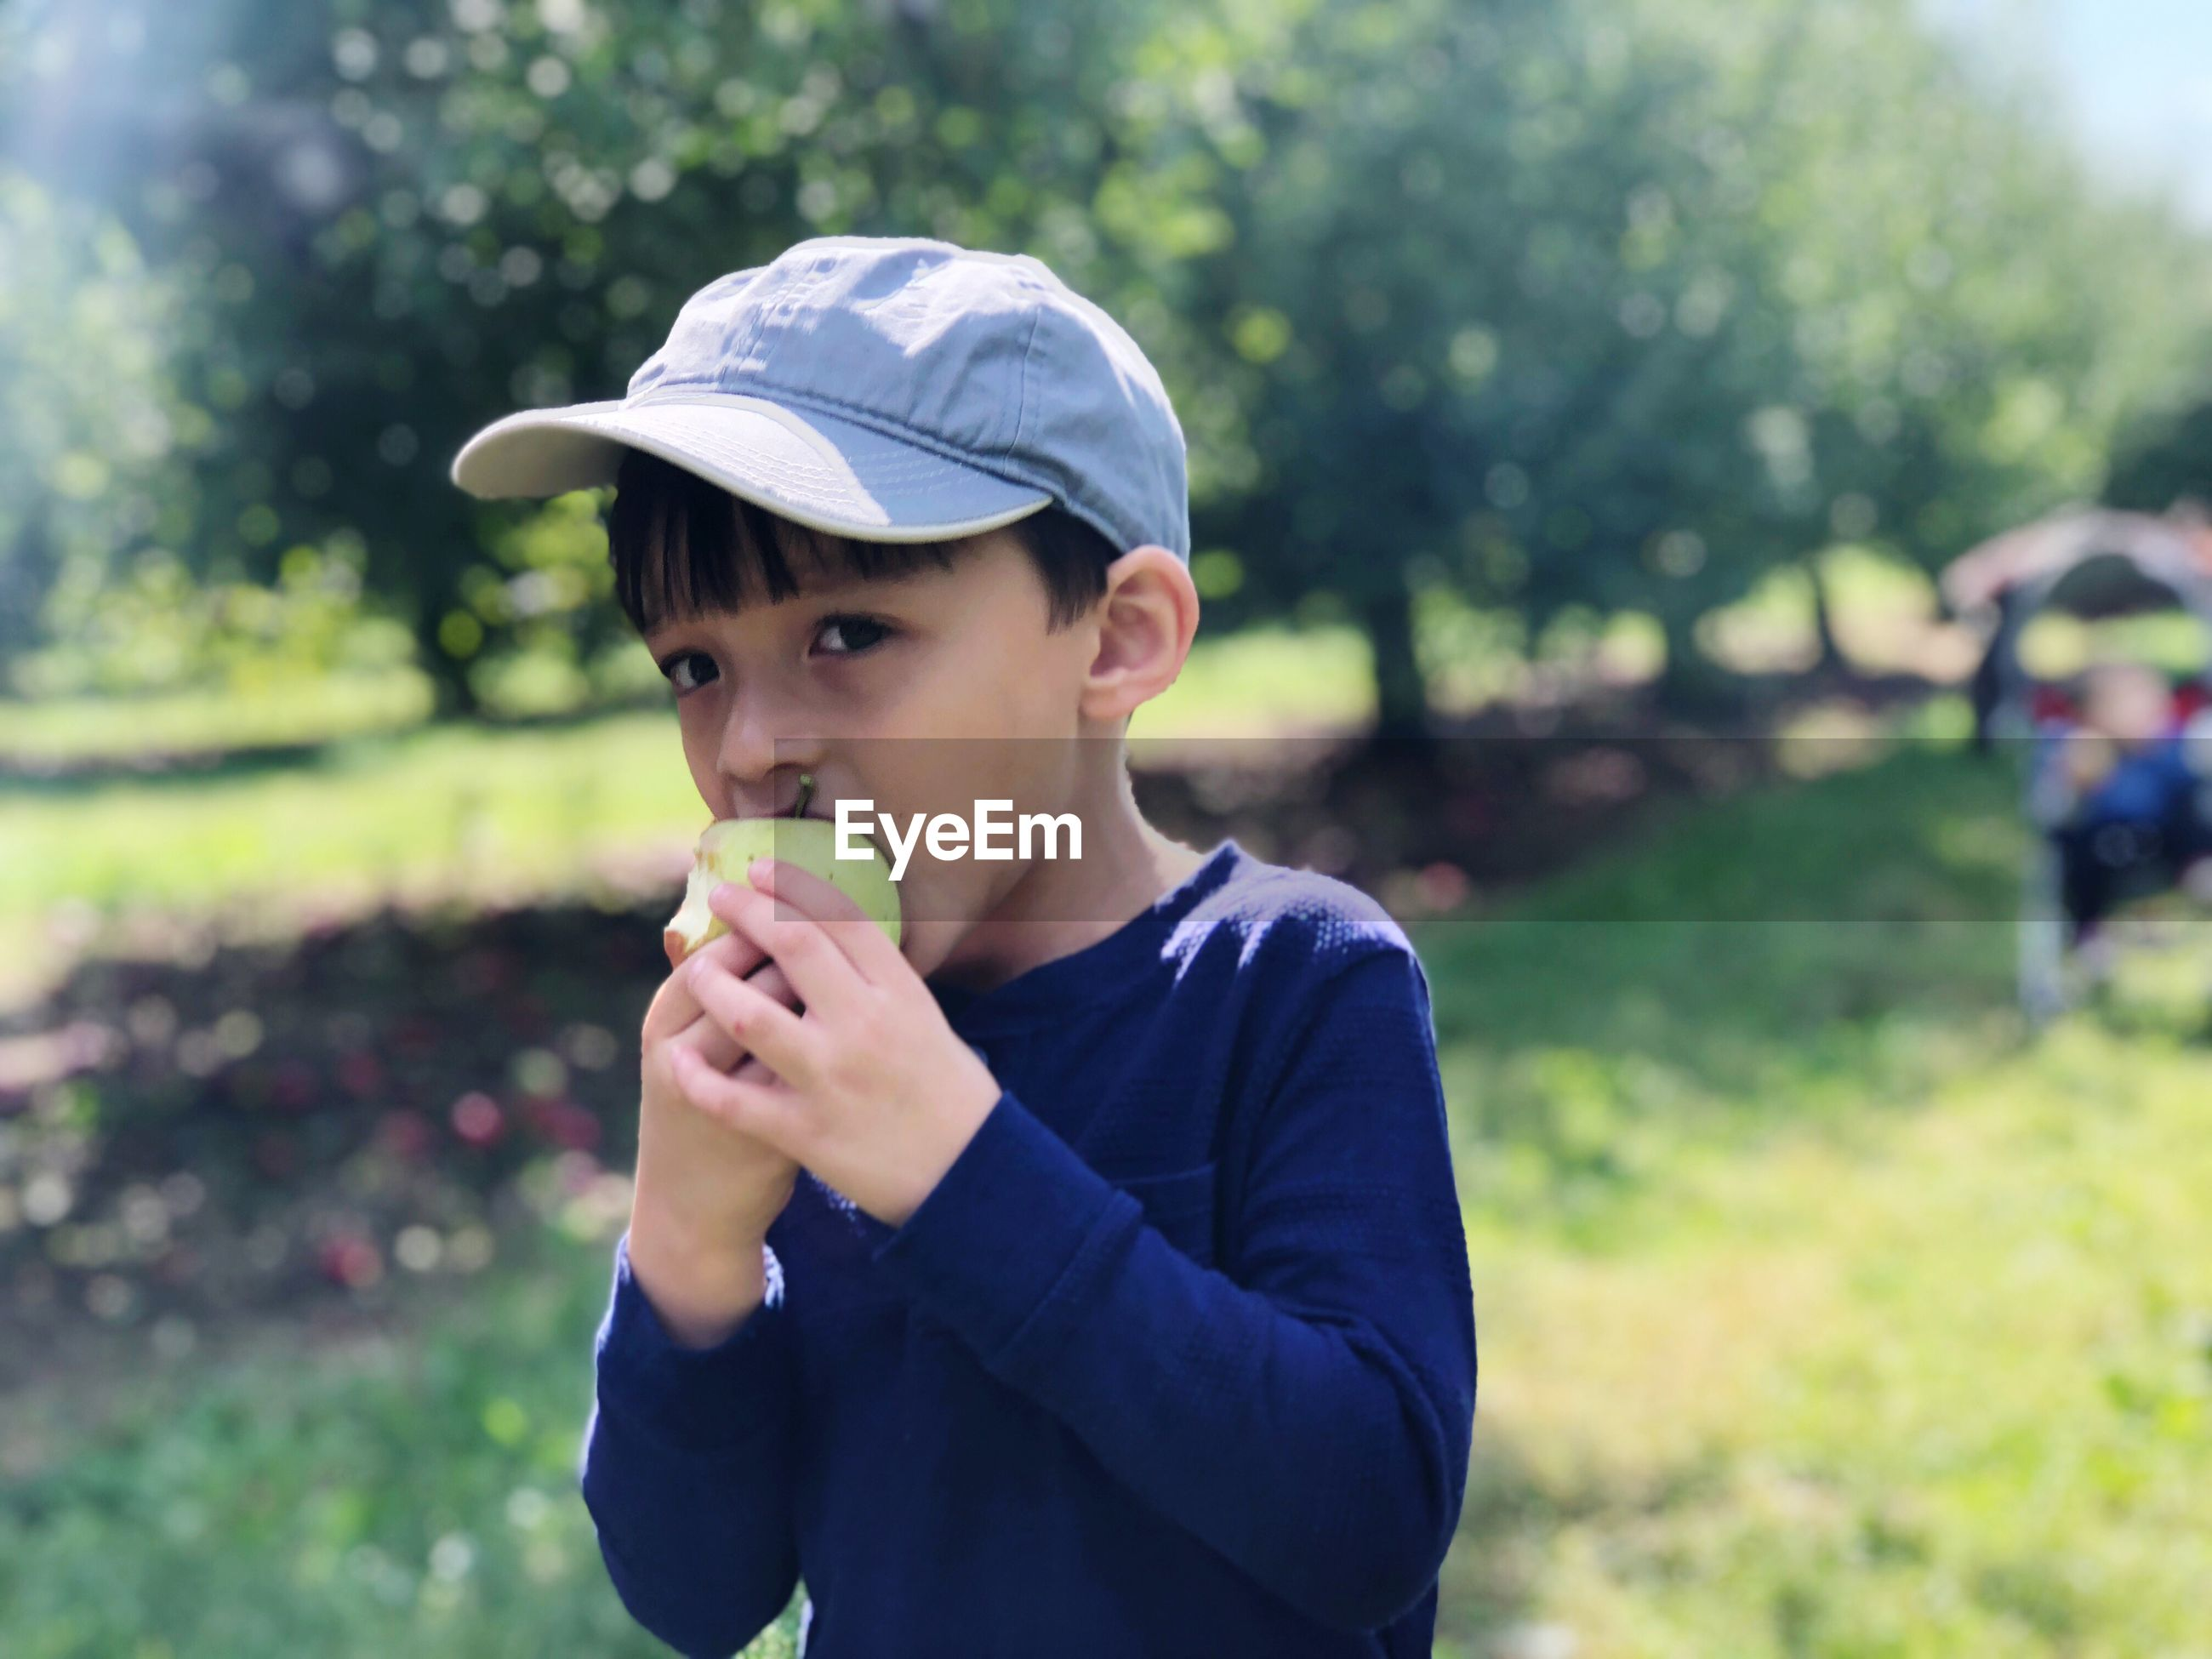 Boy eating apple while standing on field